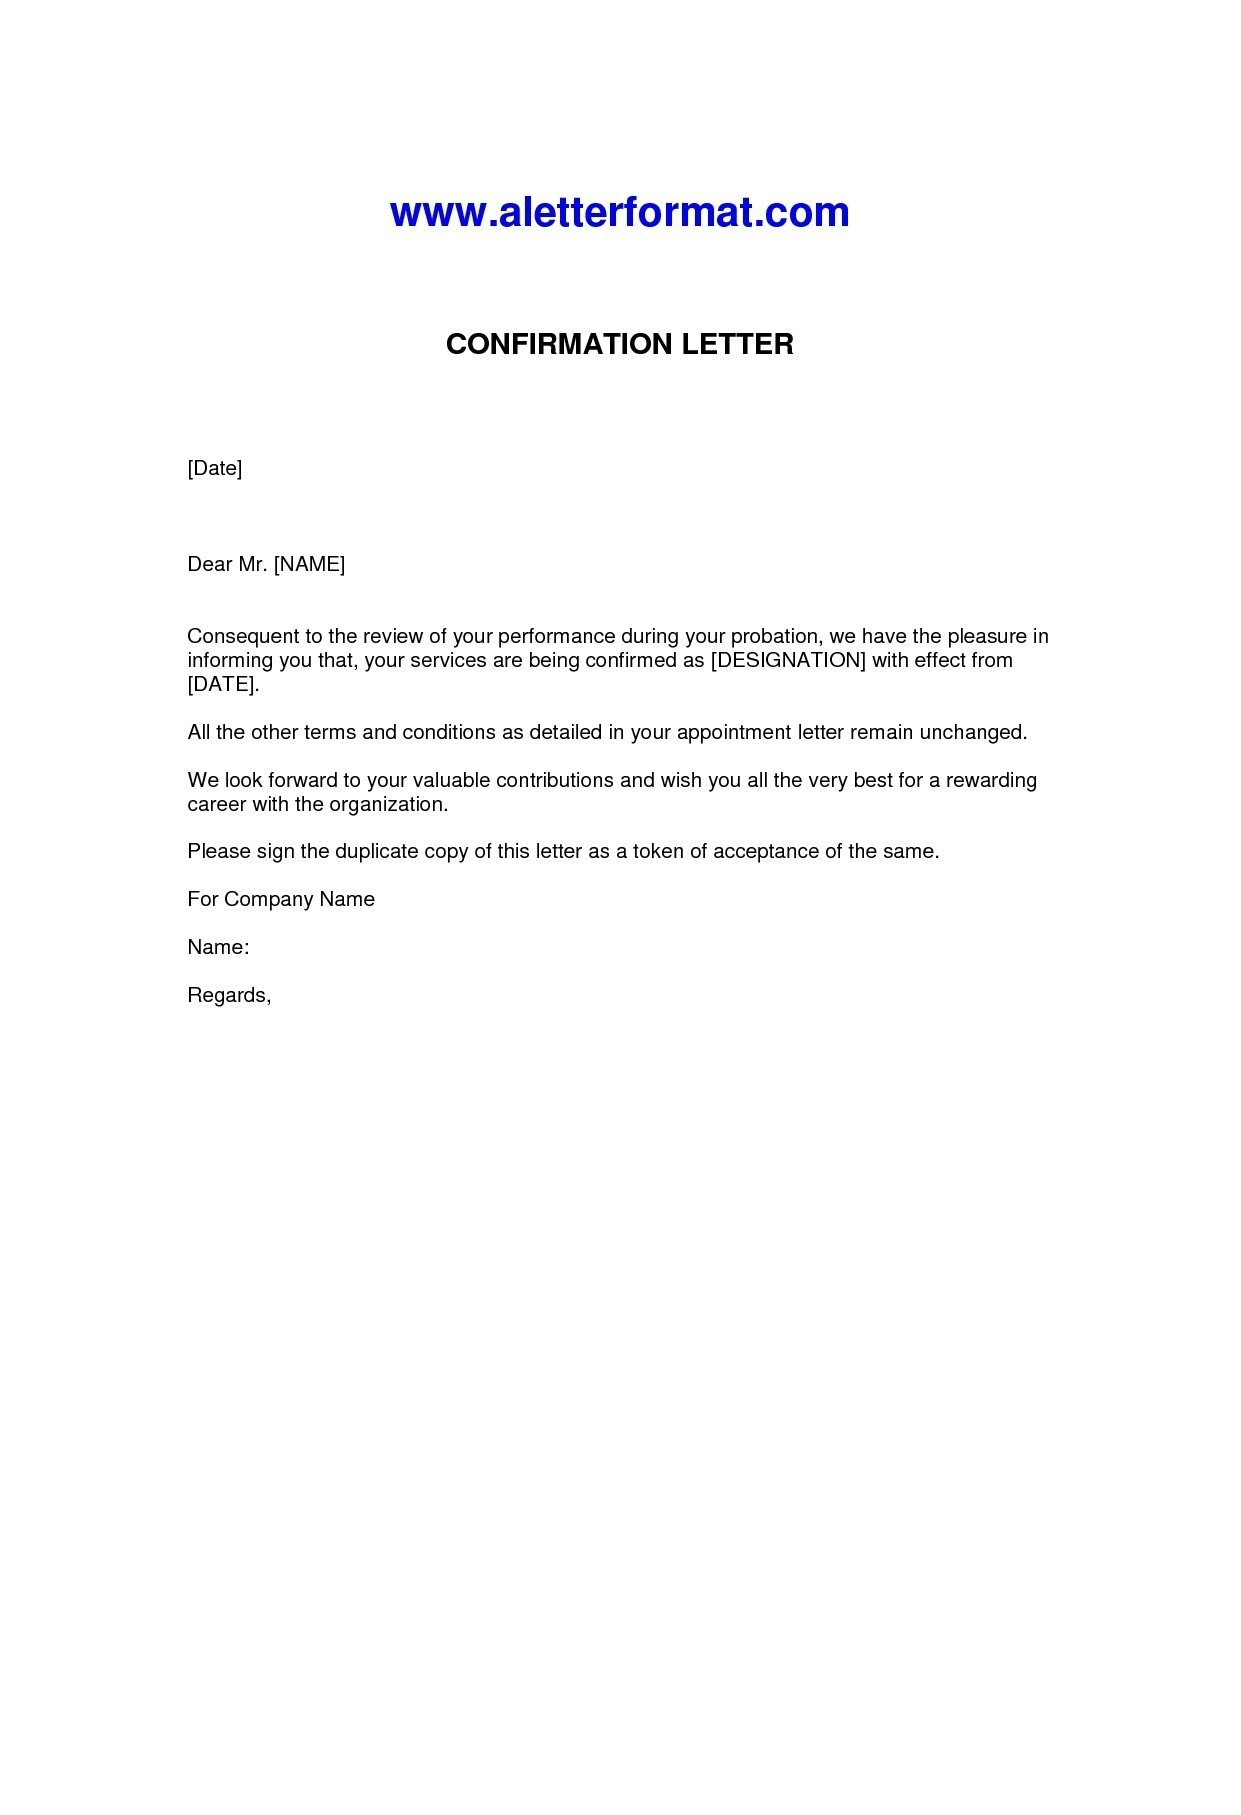 Employment confirmation letter template doc examples letter cover employment confirmation letter template doc job confirmation sample letters fresh request for job confirmation altavistaventures